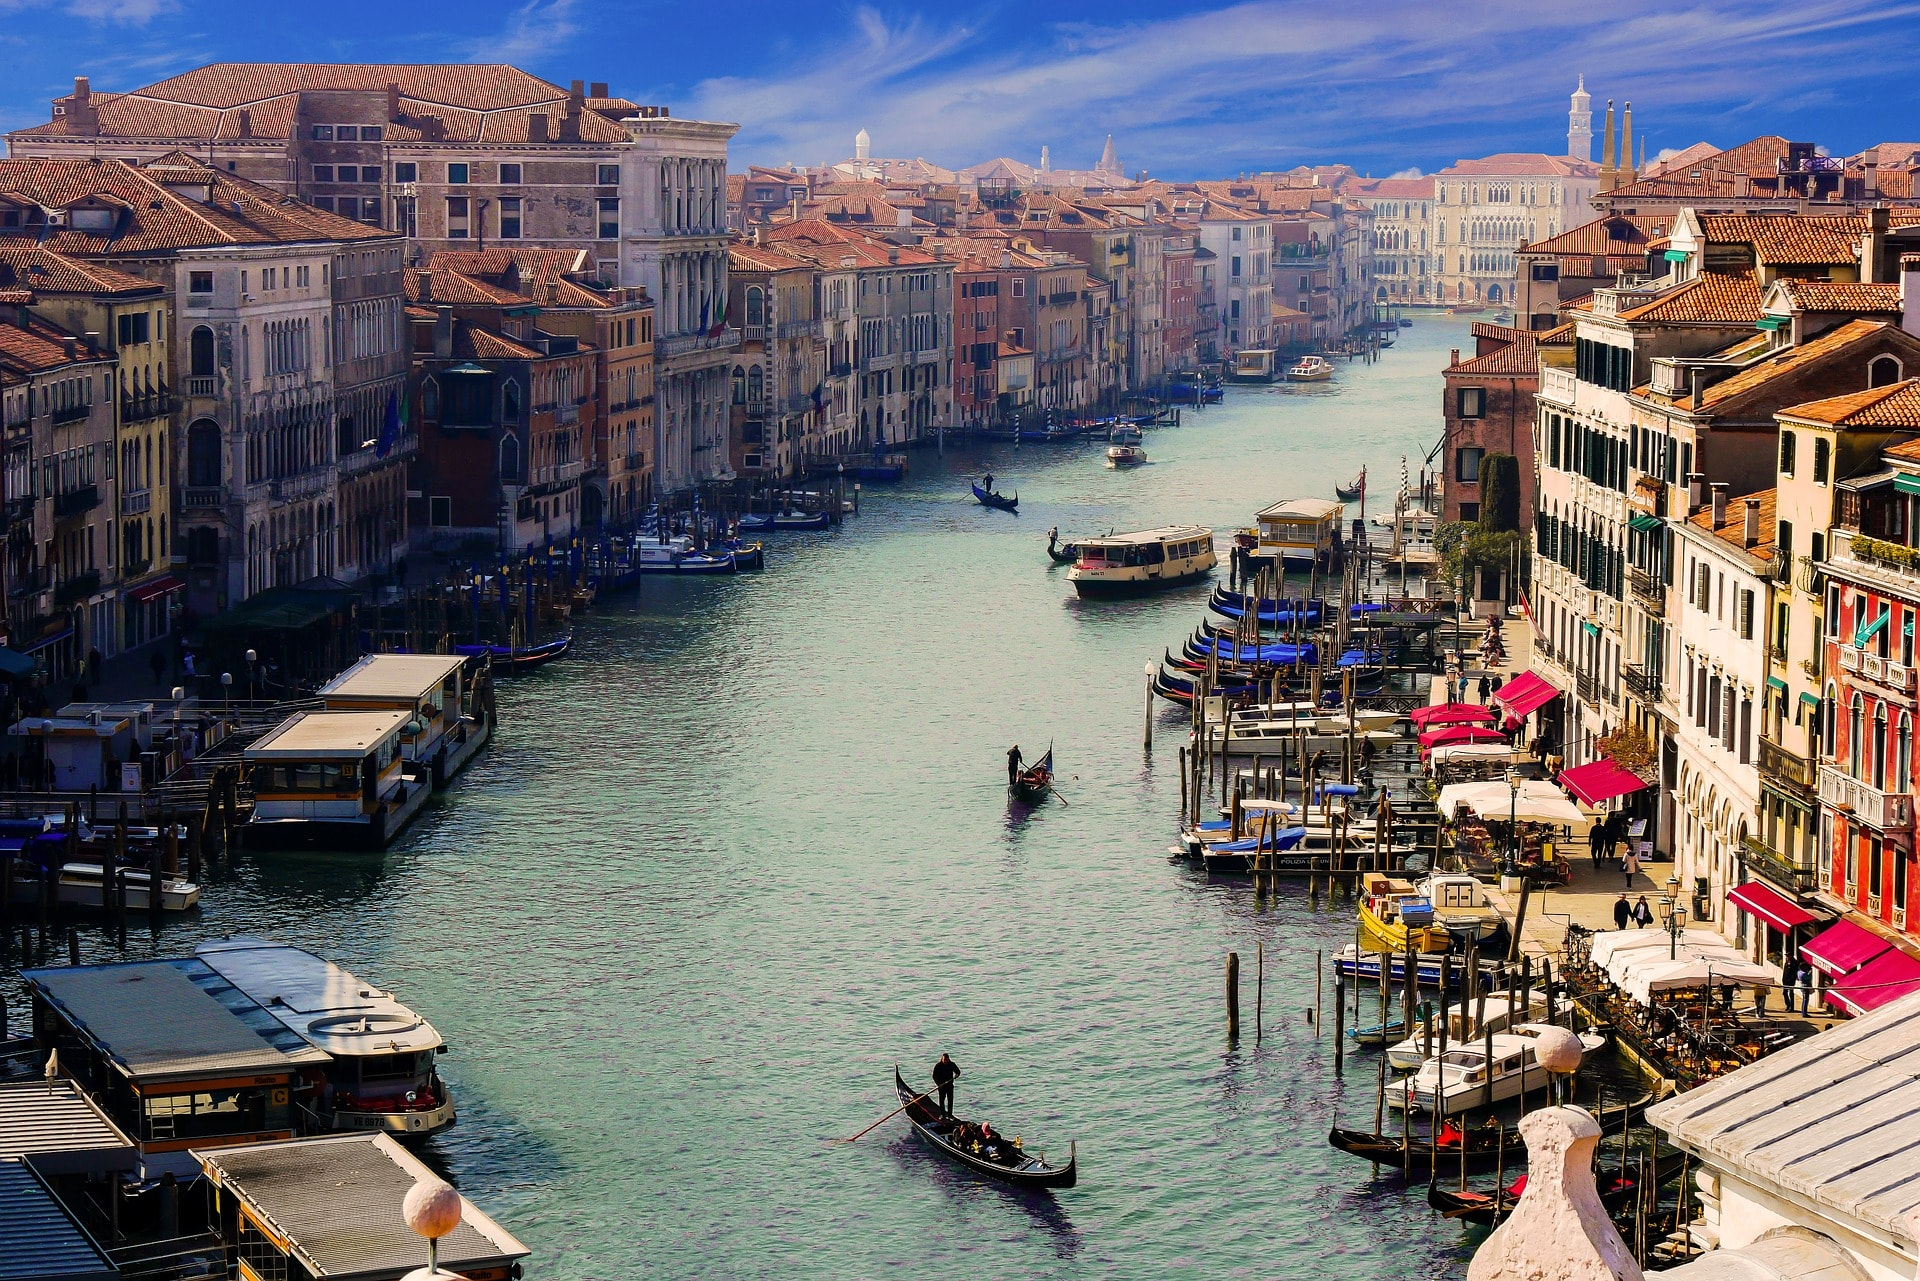 visiter venise avec le city-pass officiel venezia unica